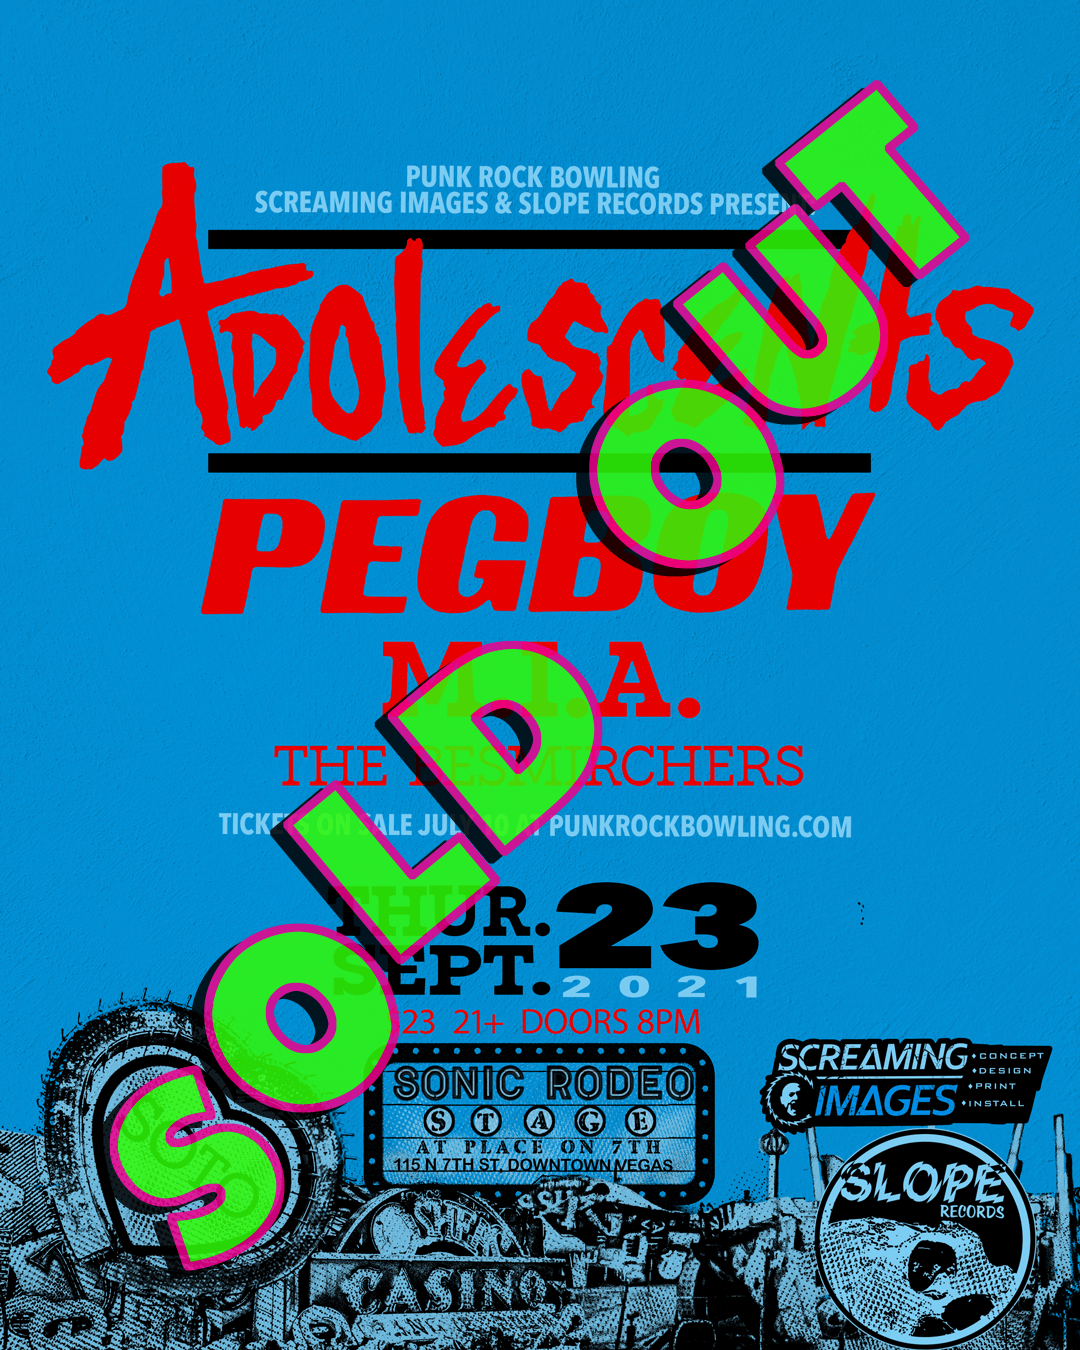 Adolescents, Pegboy, MIA, The Besmirchers Punk Rock Bowling 2021 After Party SOLD OUT